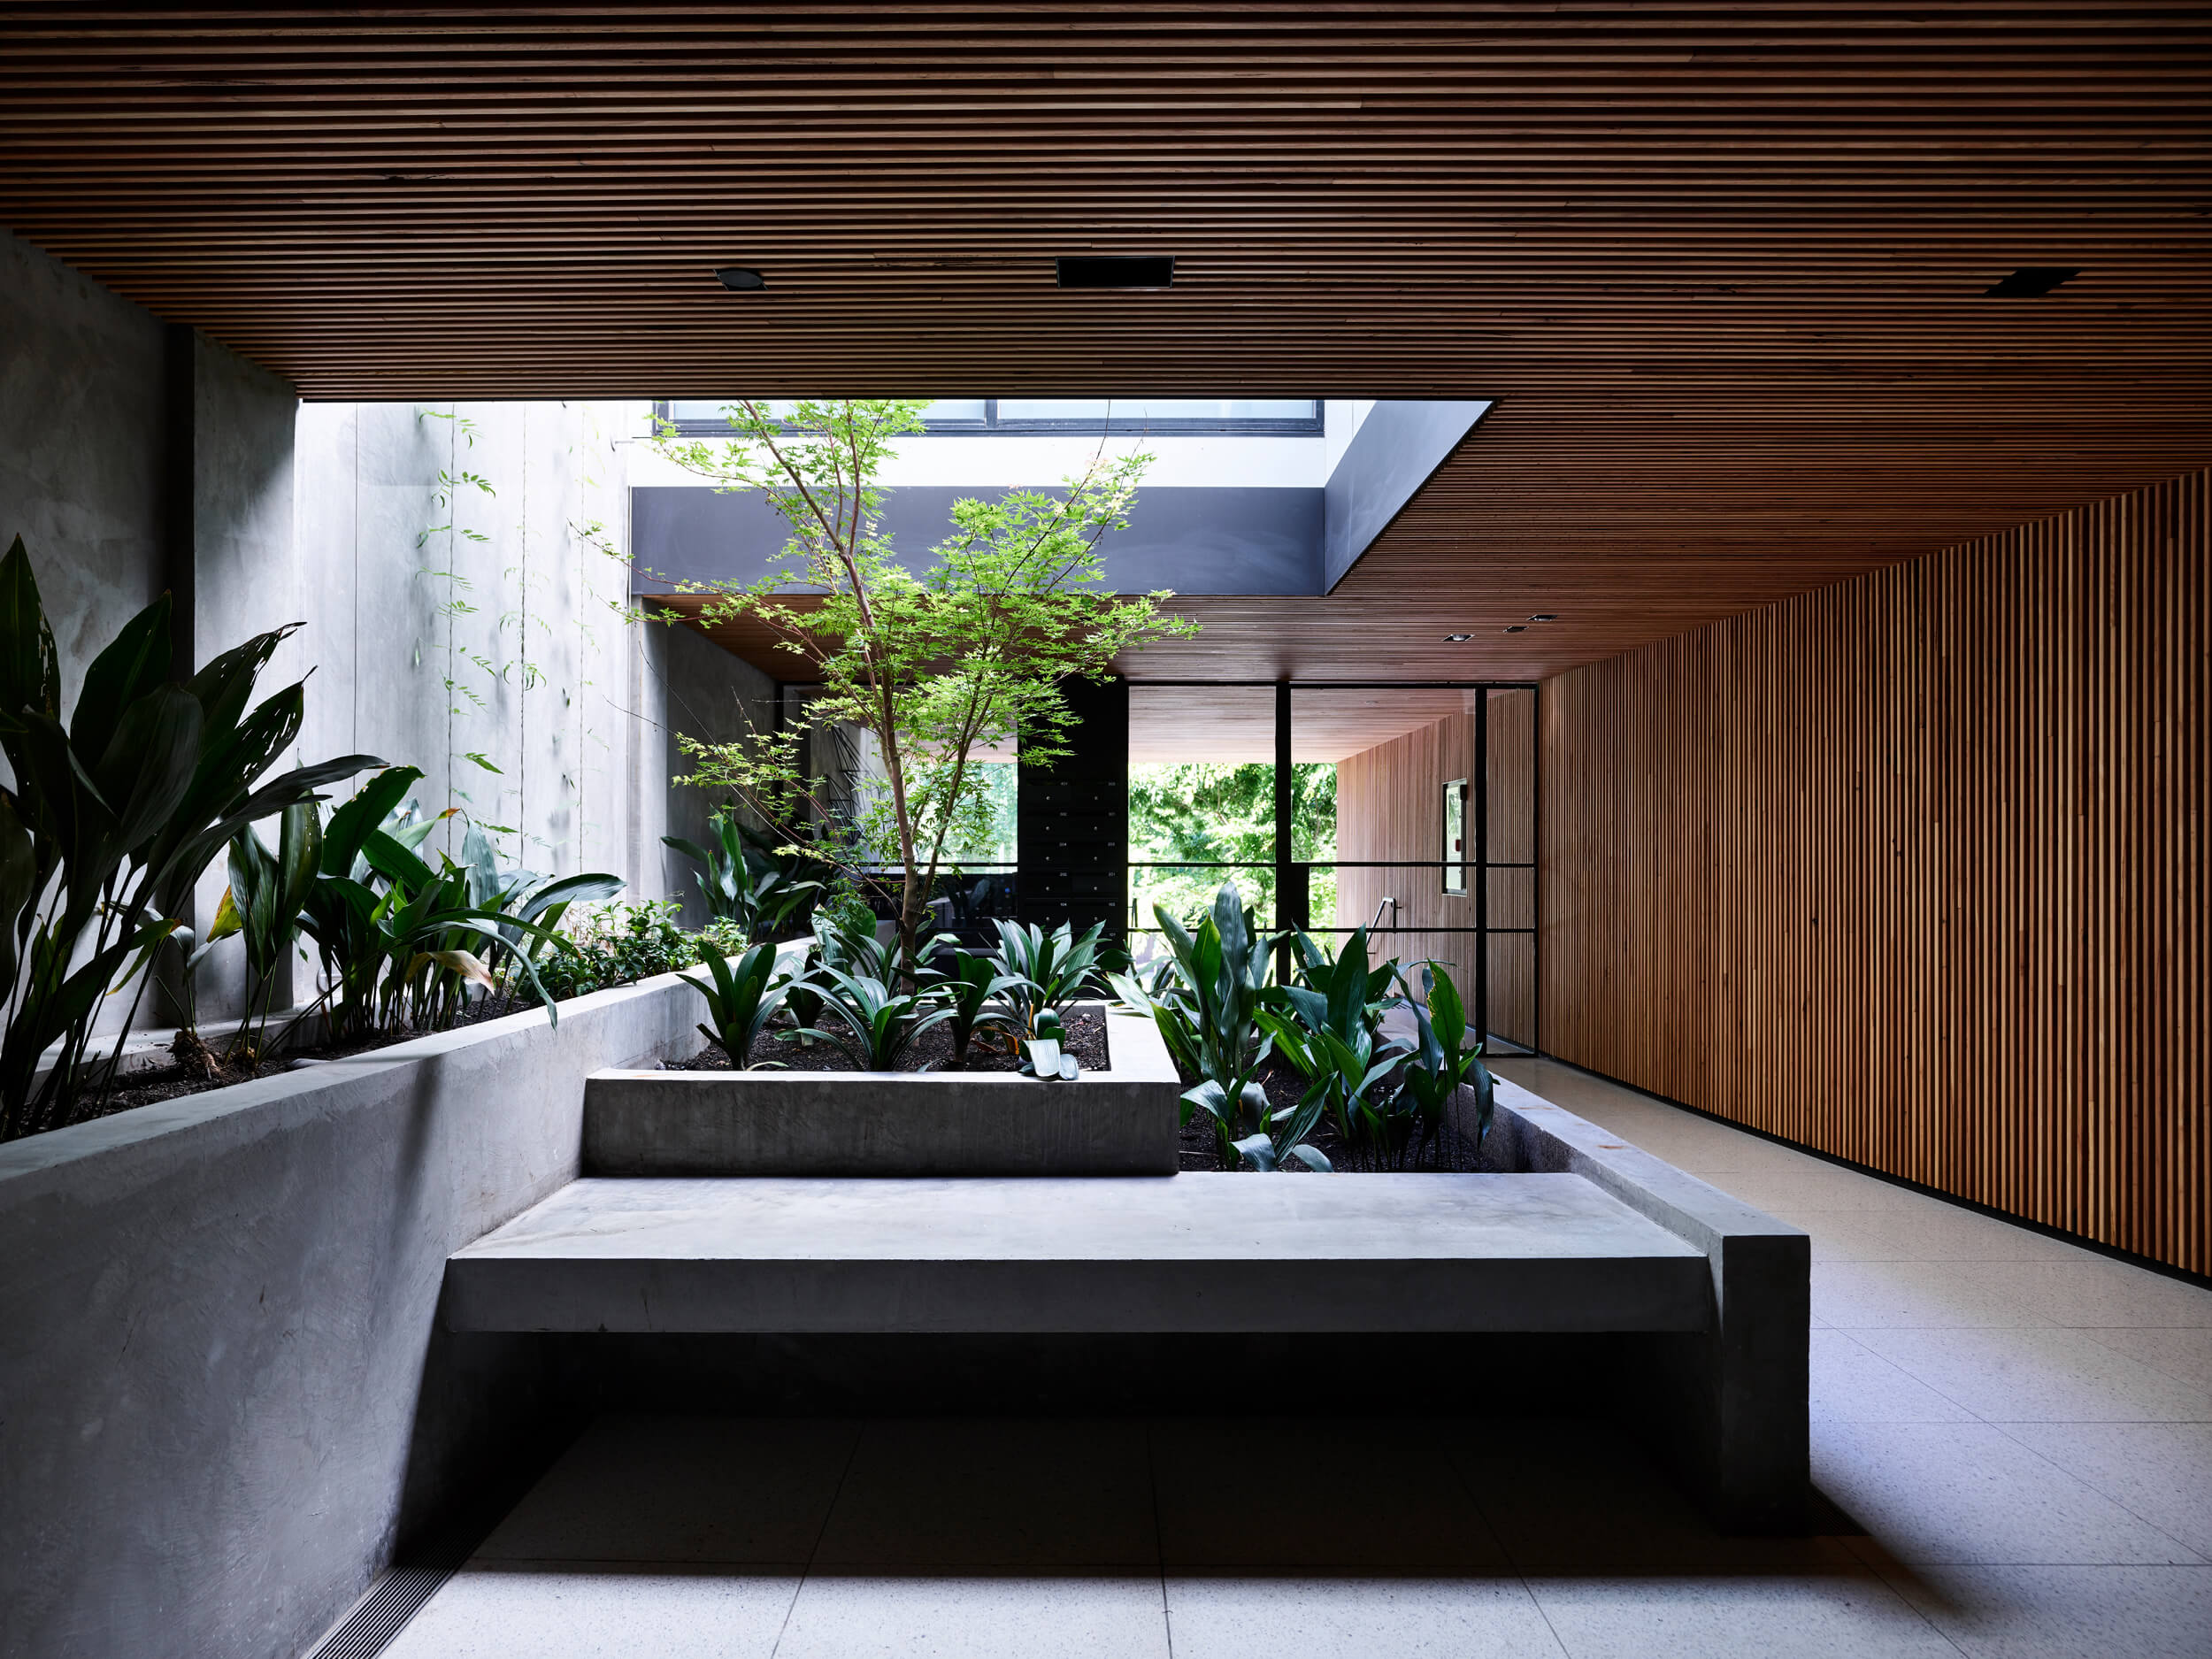 Holly Penthouse By Tom Robertson Architects Project Feature Melbourne, Australia Local Australian Design & Architectureholly R V Derek043